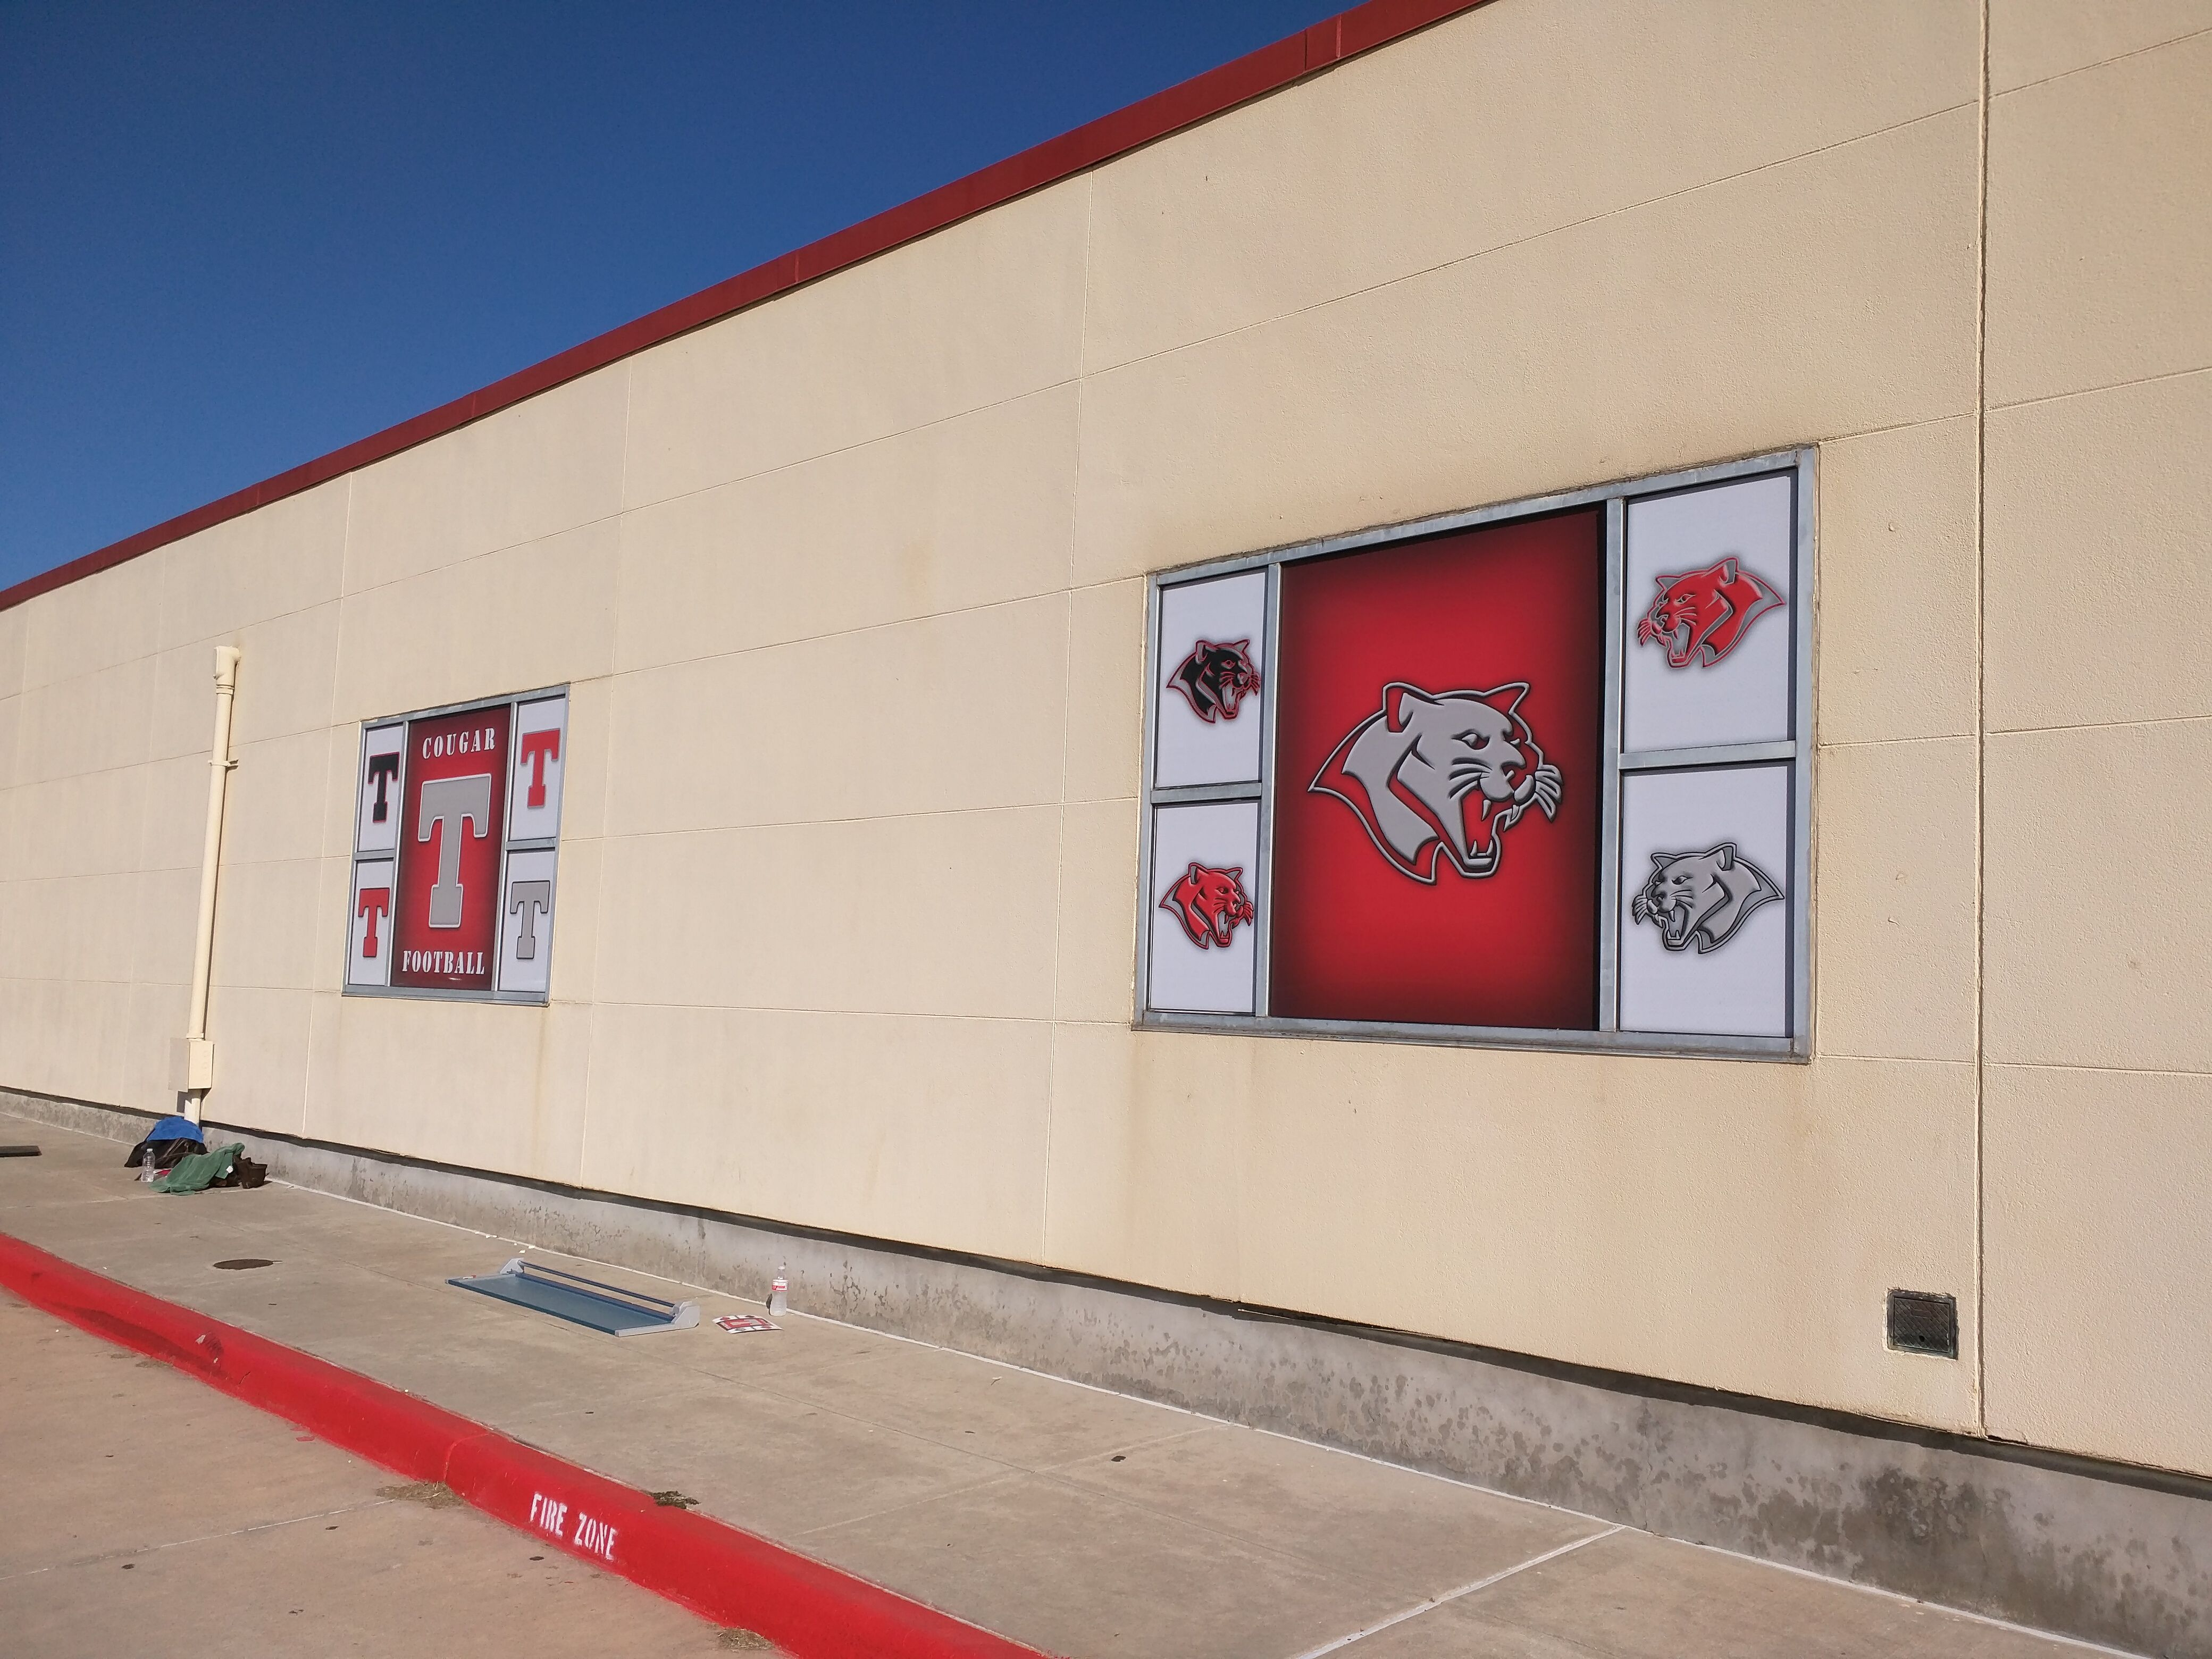 Tomball High School Coach S Office Windows School Coach